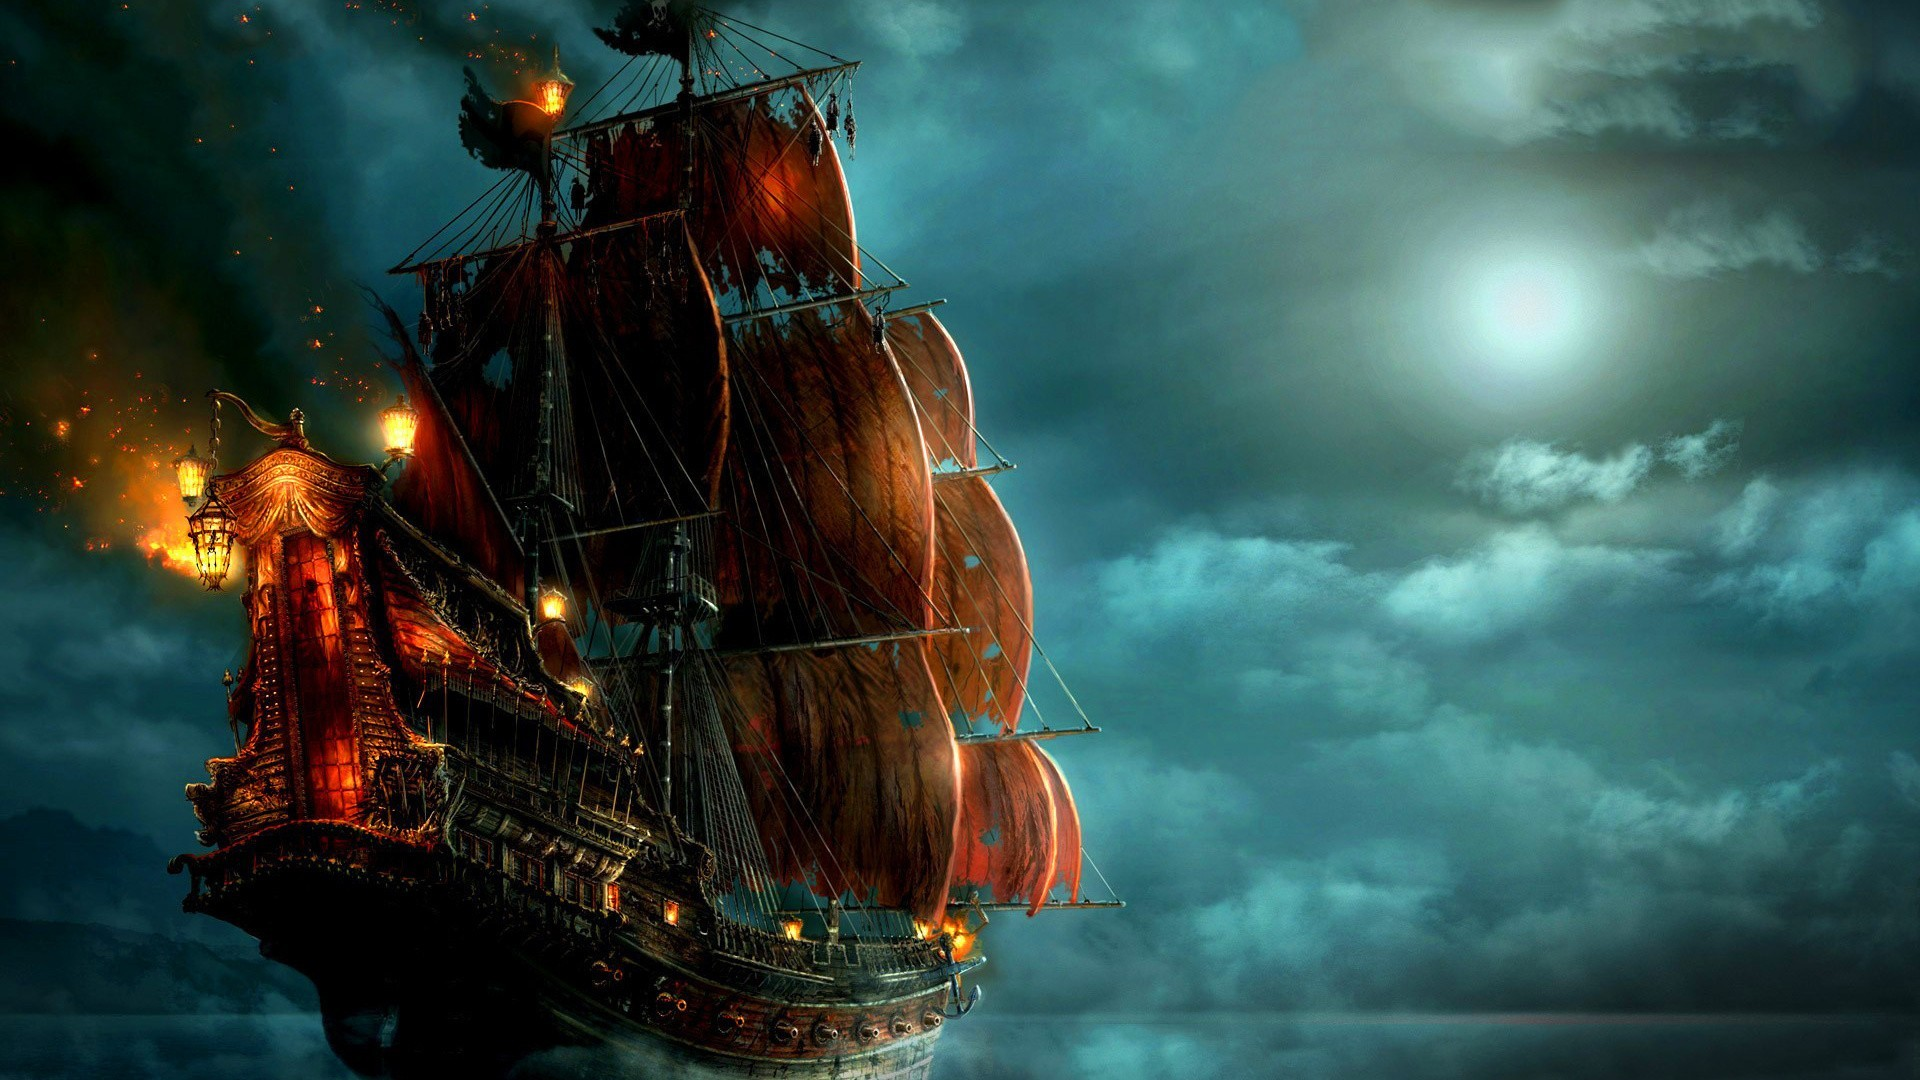 Download Amazing Funny Wallpapers Hd Gallery Src Pirates Of The Caribbean Ship 1920x1080 Download Hd Wallpaper Wallpapertip